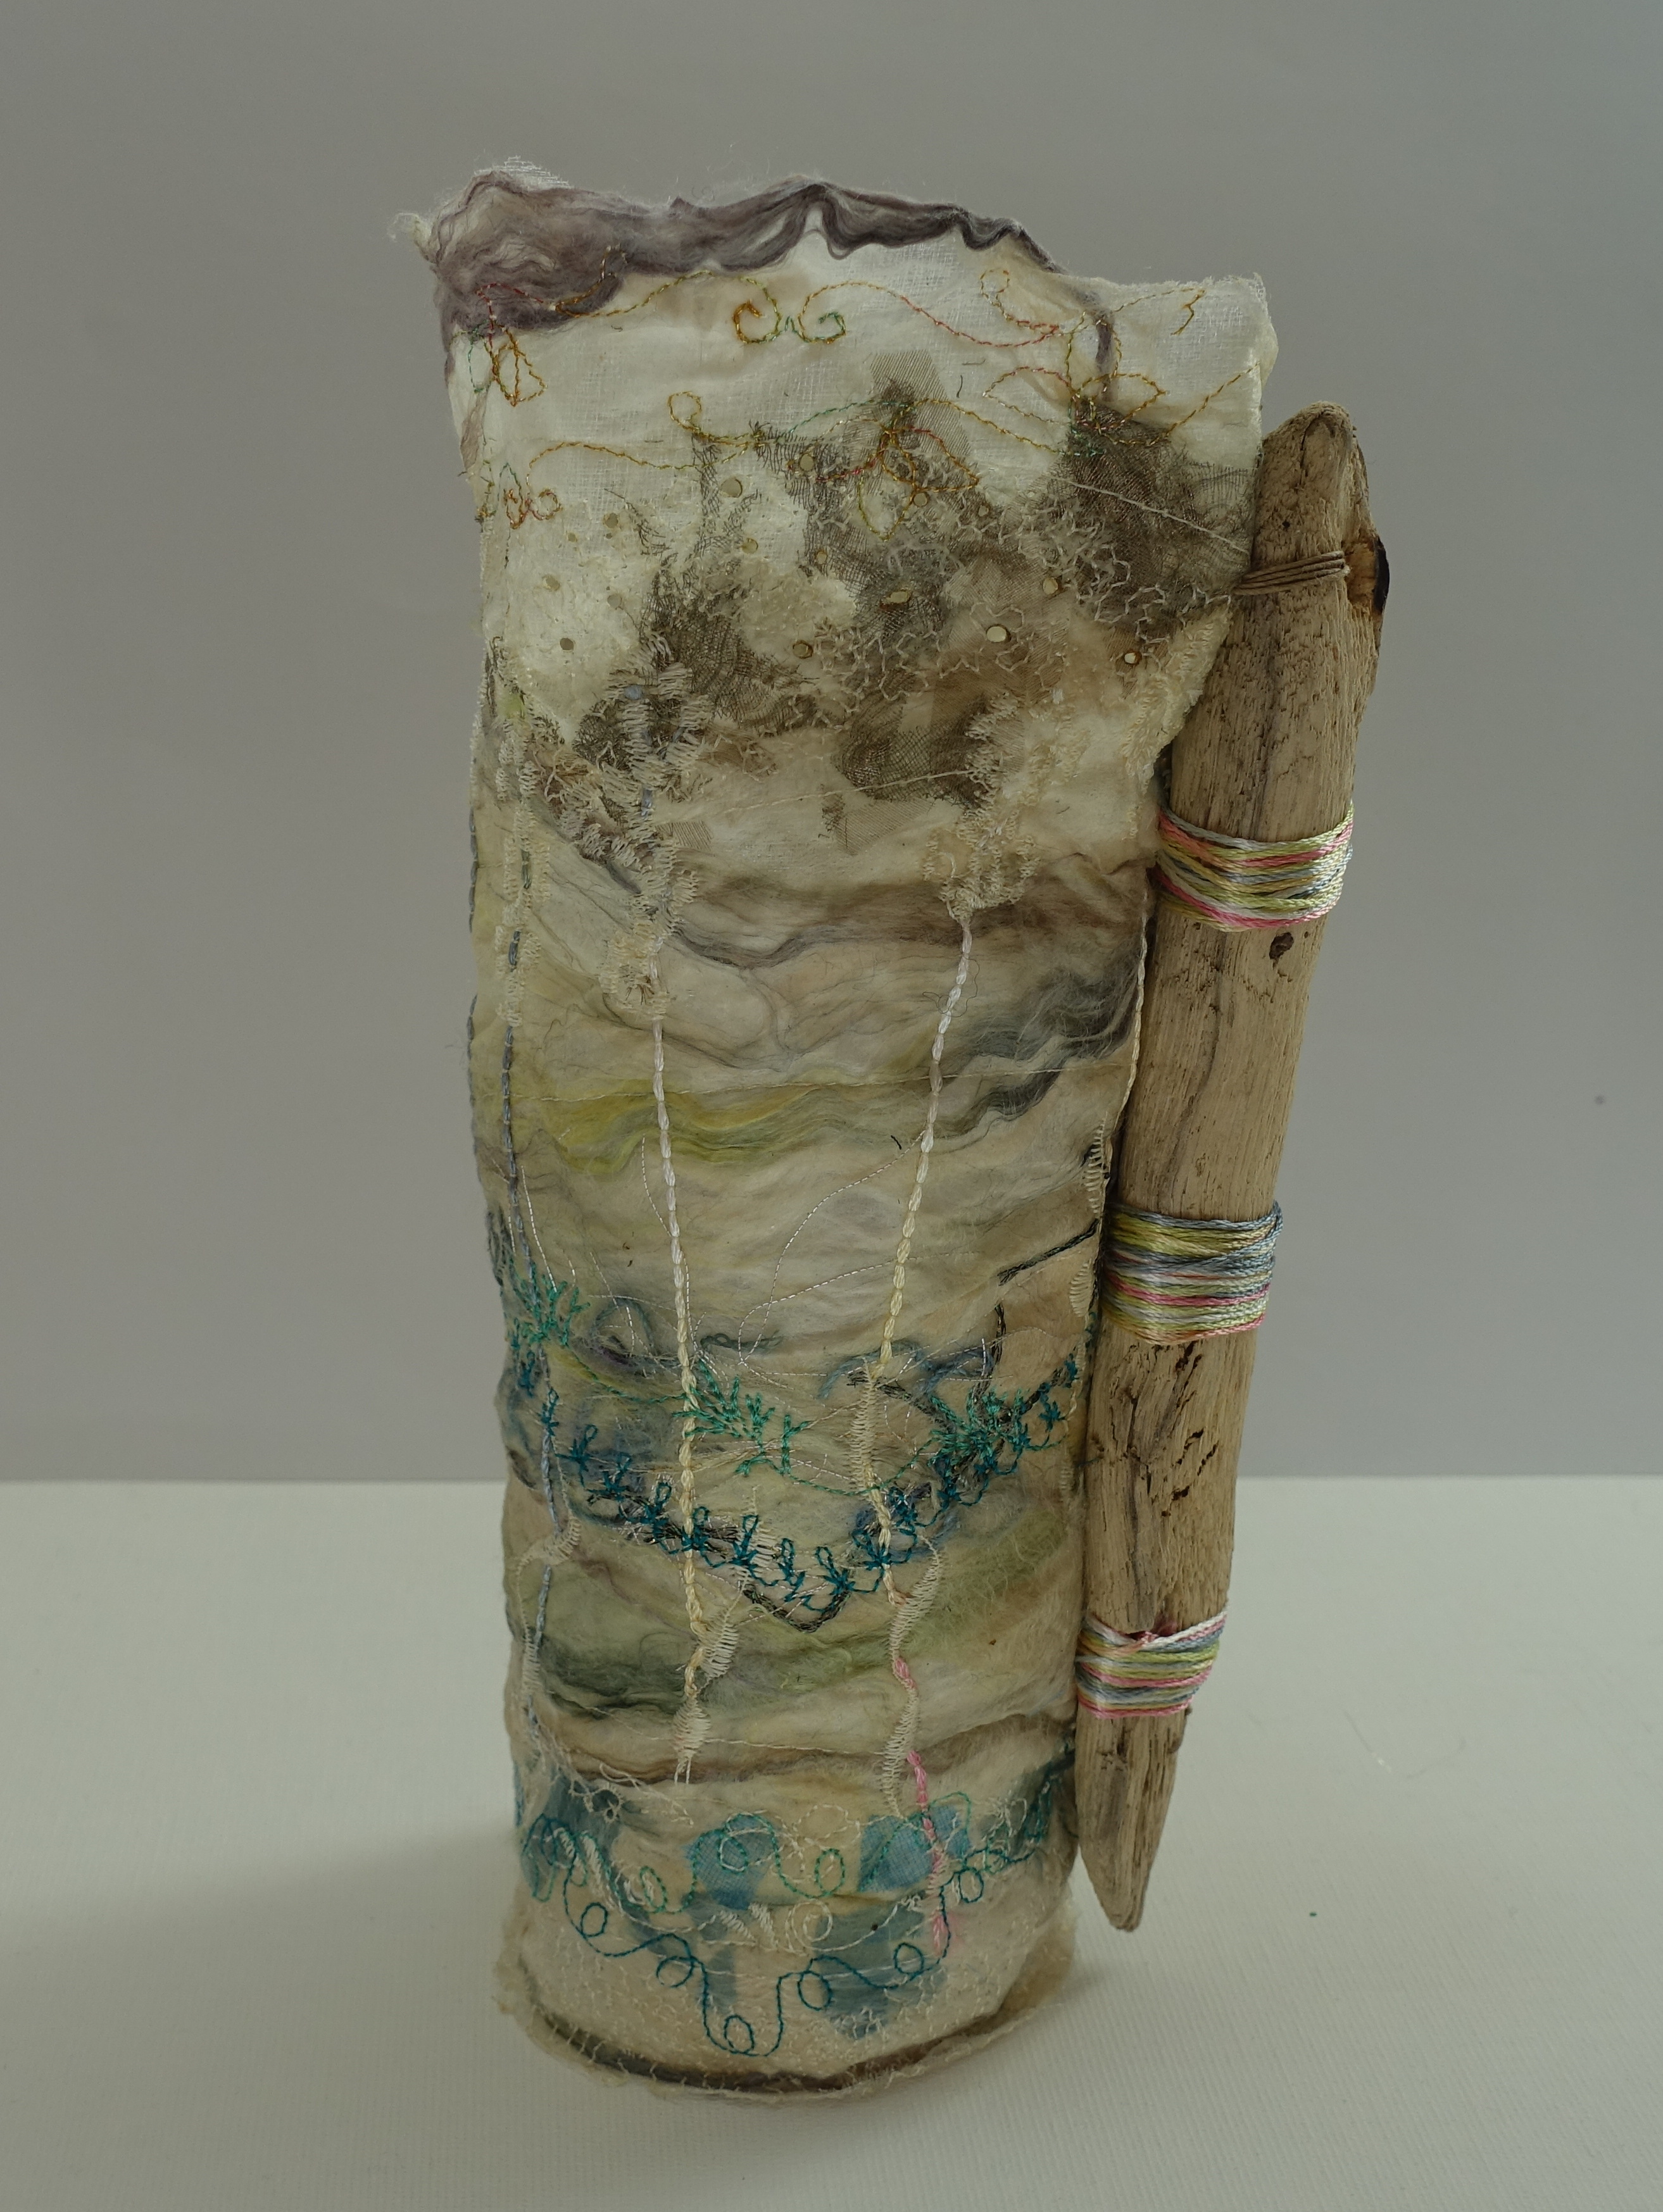 Title Driftwood Medium Vase Price £22 Size 18-20cm Silk Paper Vase with Glass Insert